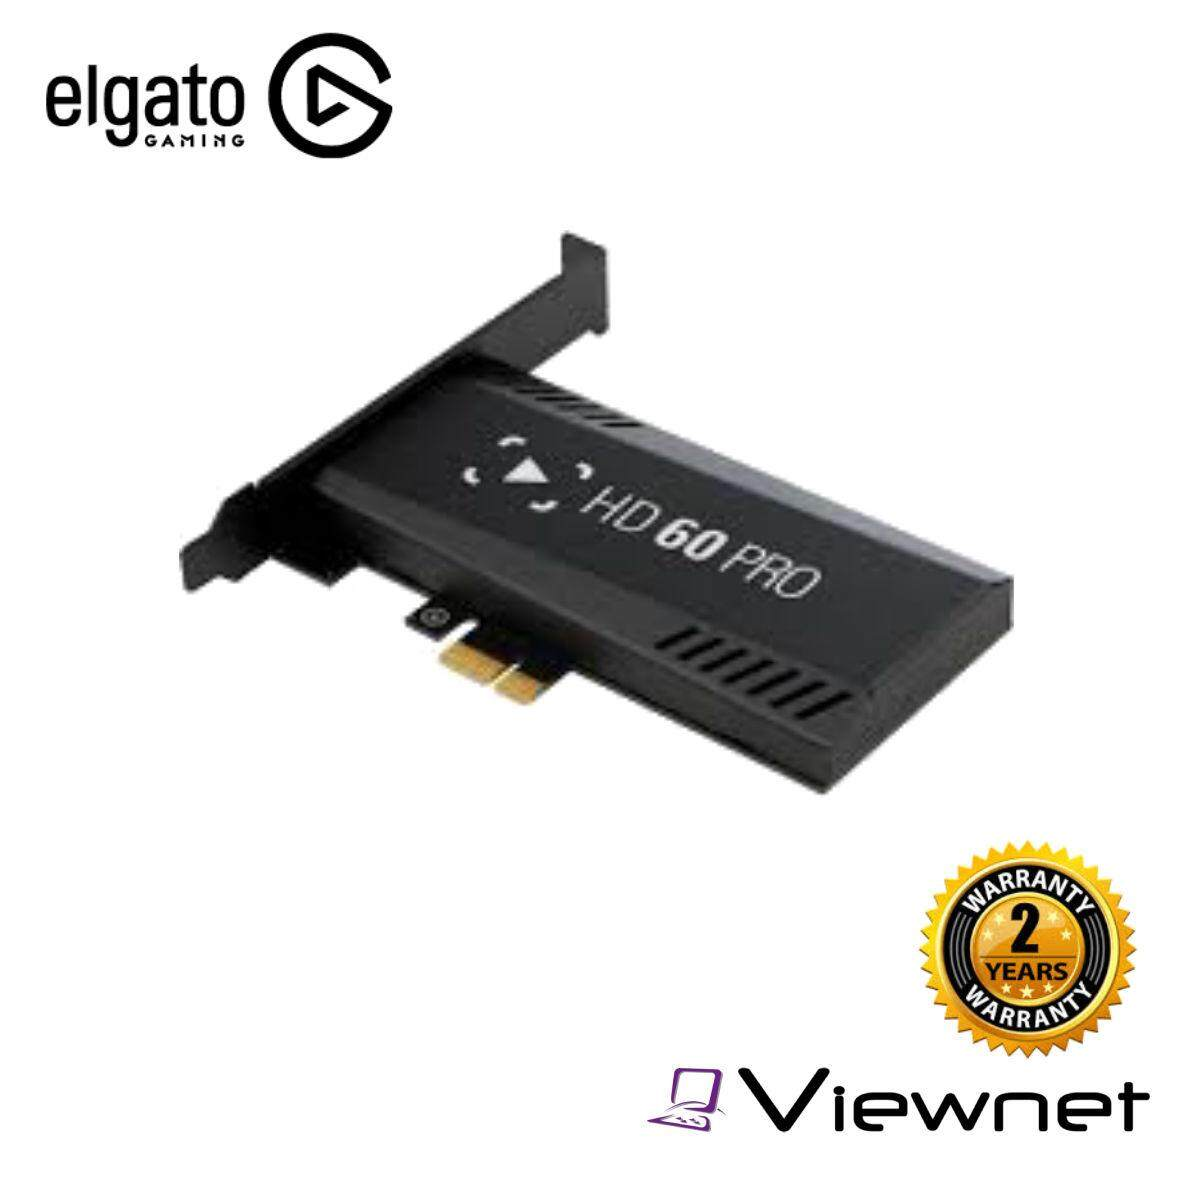 Elgato PCIE HD60 PRO High Definition Game Recorder Capture Card (1GC109901002)